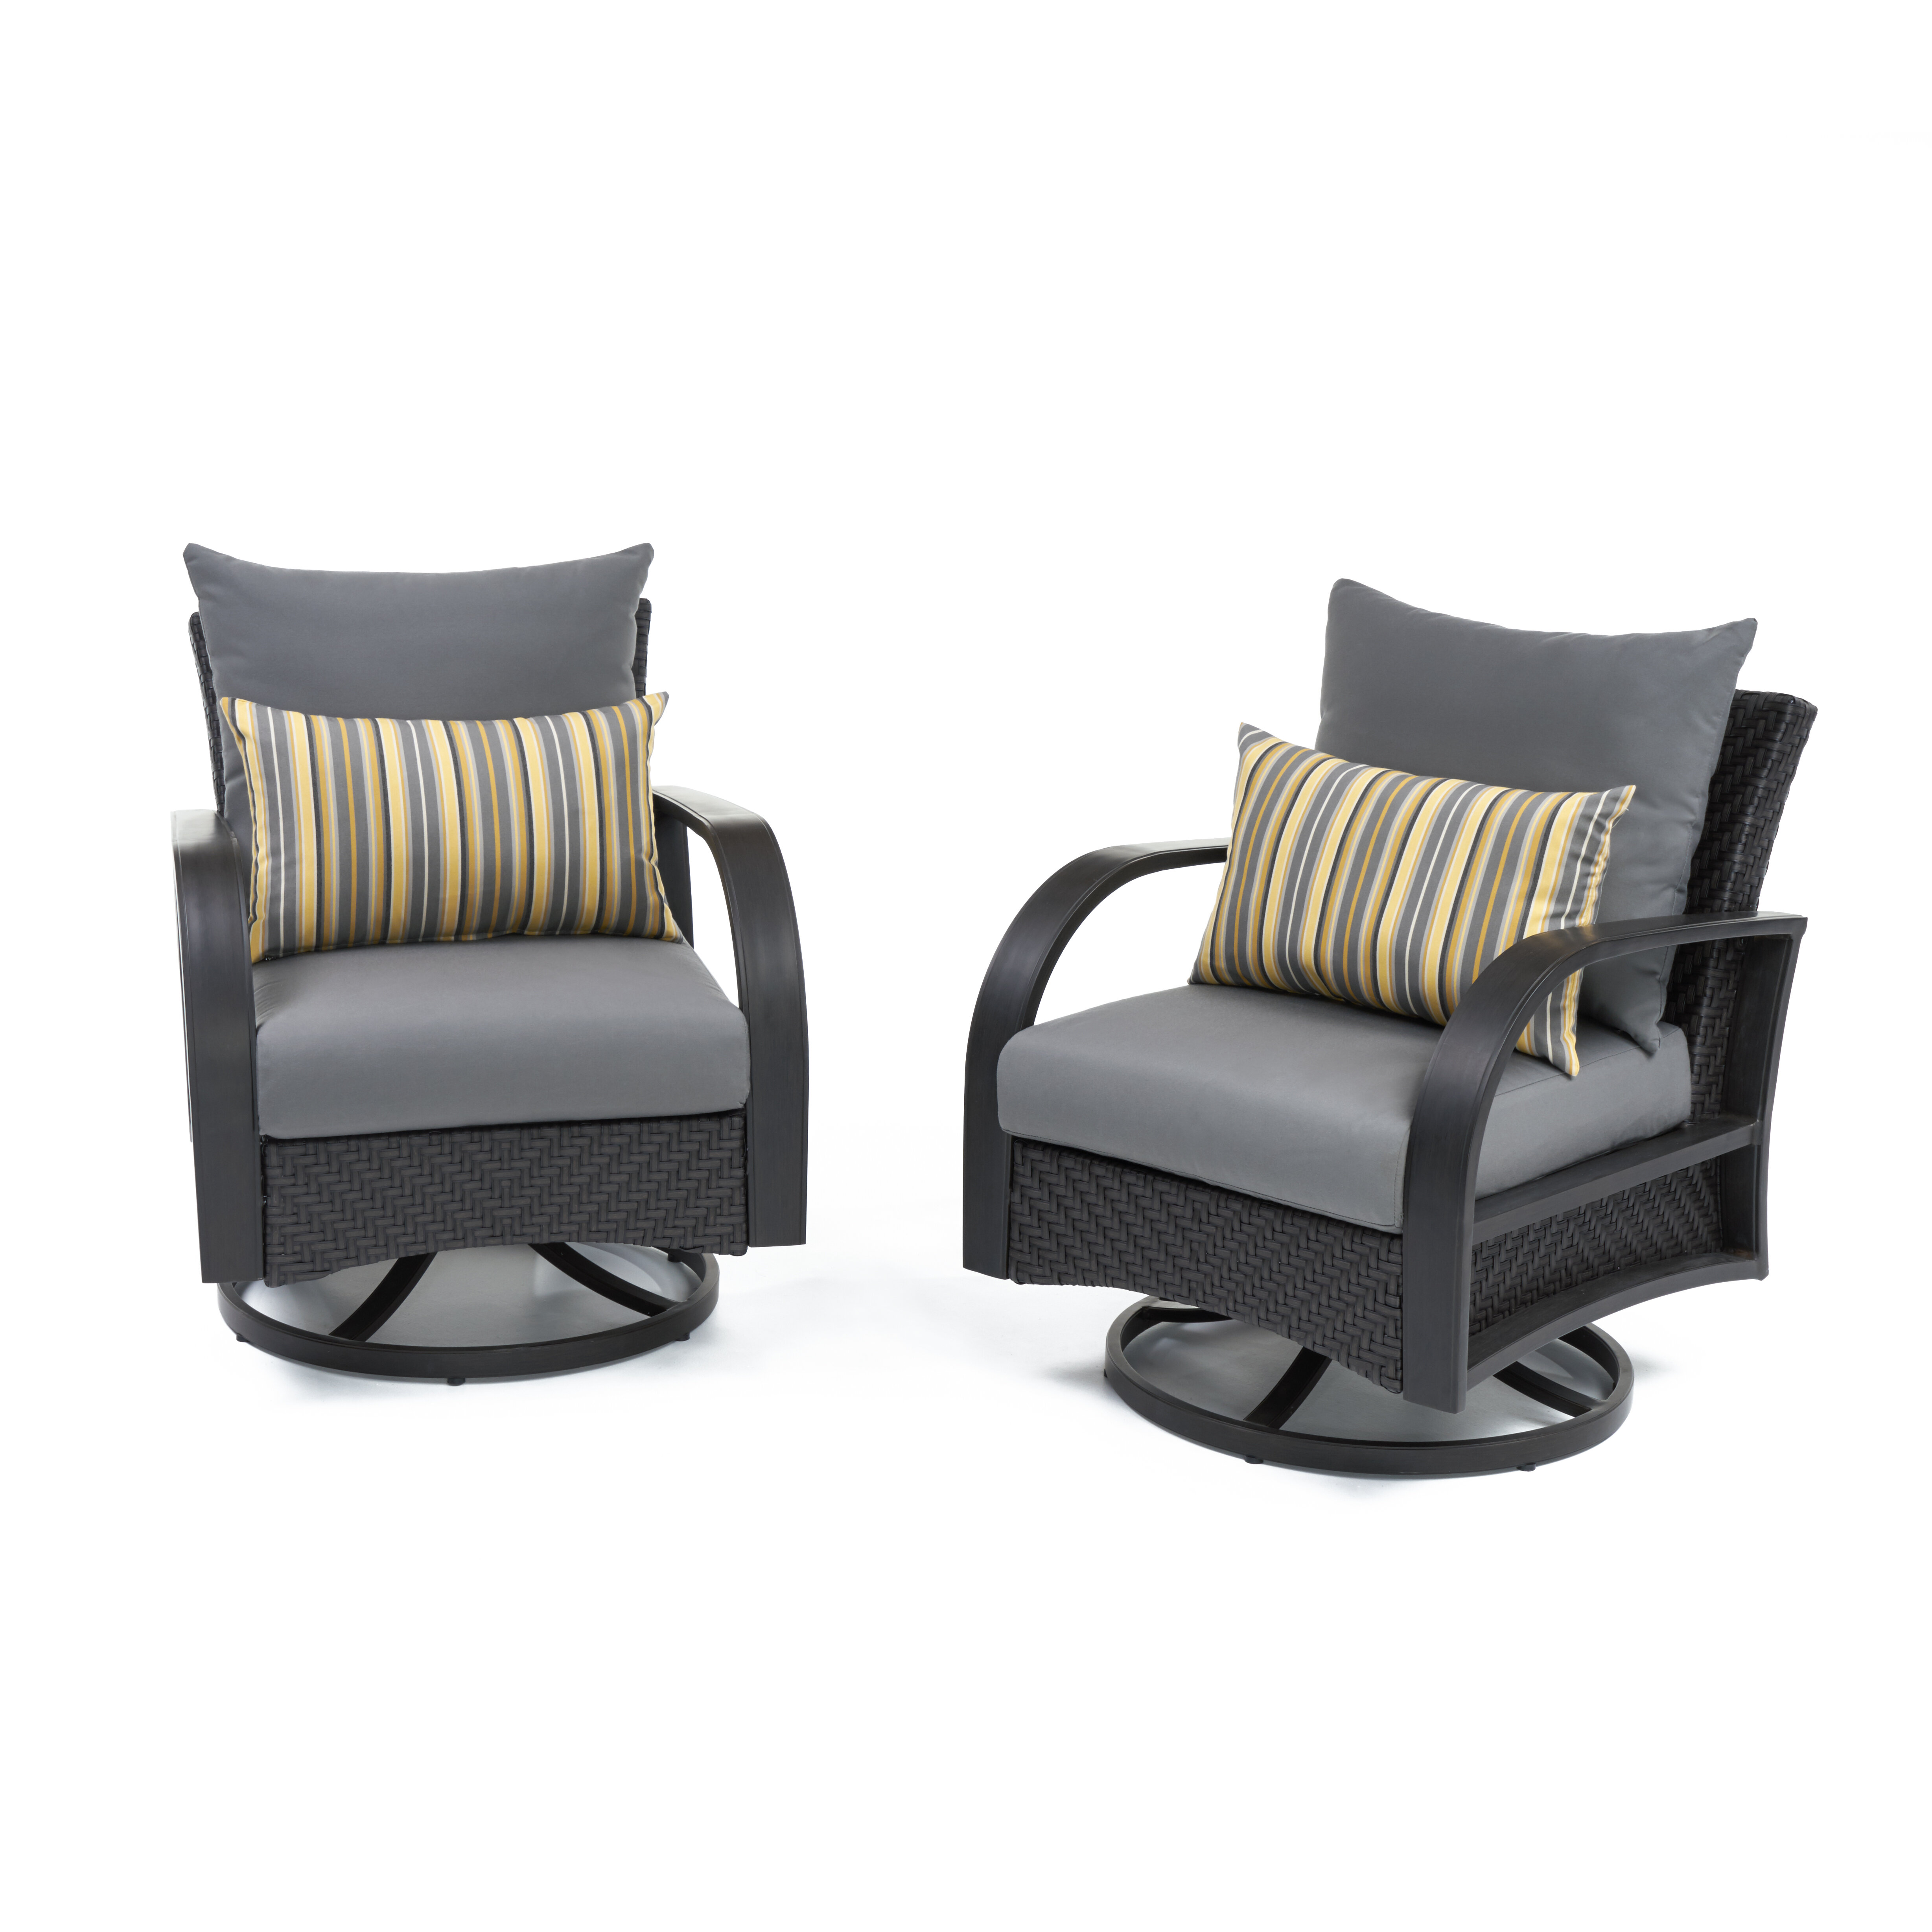 Swell Cerralvo Swivel Patio Chair With Sunbrella Cushions Cjindustries Chair Design For Home Cjindustriesco